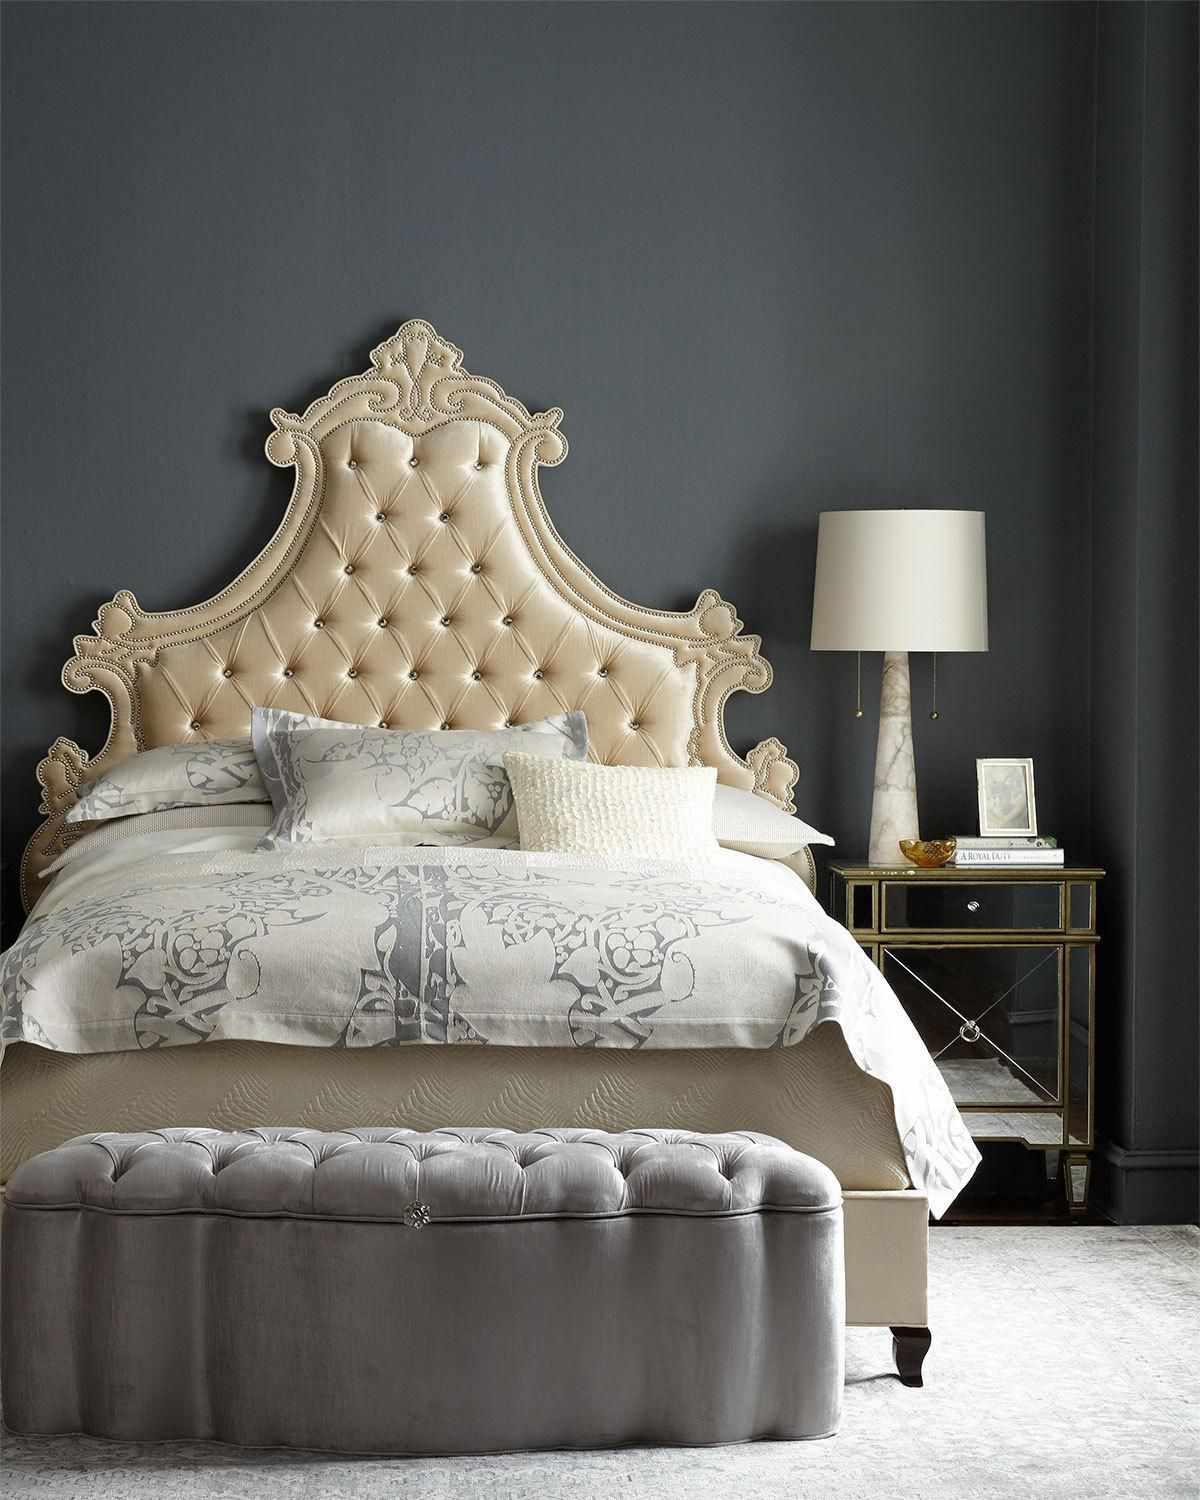 Gustav king bed in products pinterest bed king beds and